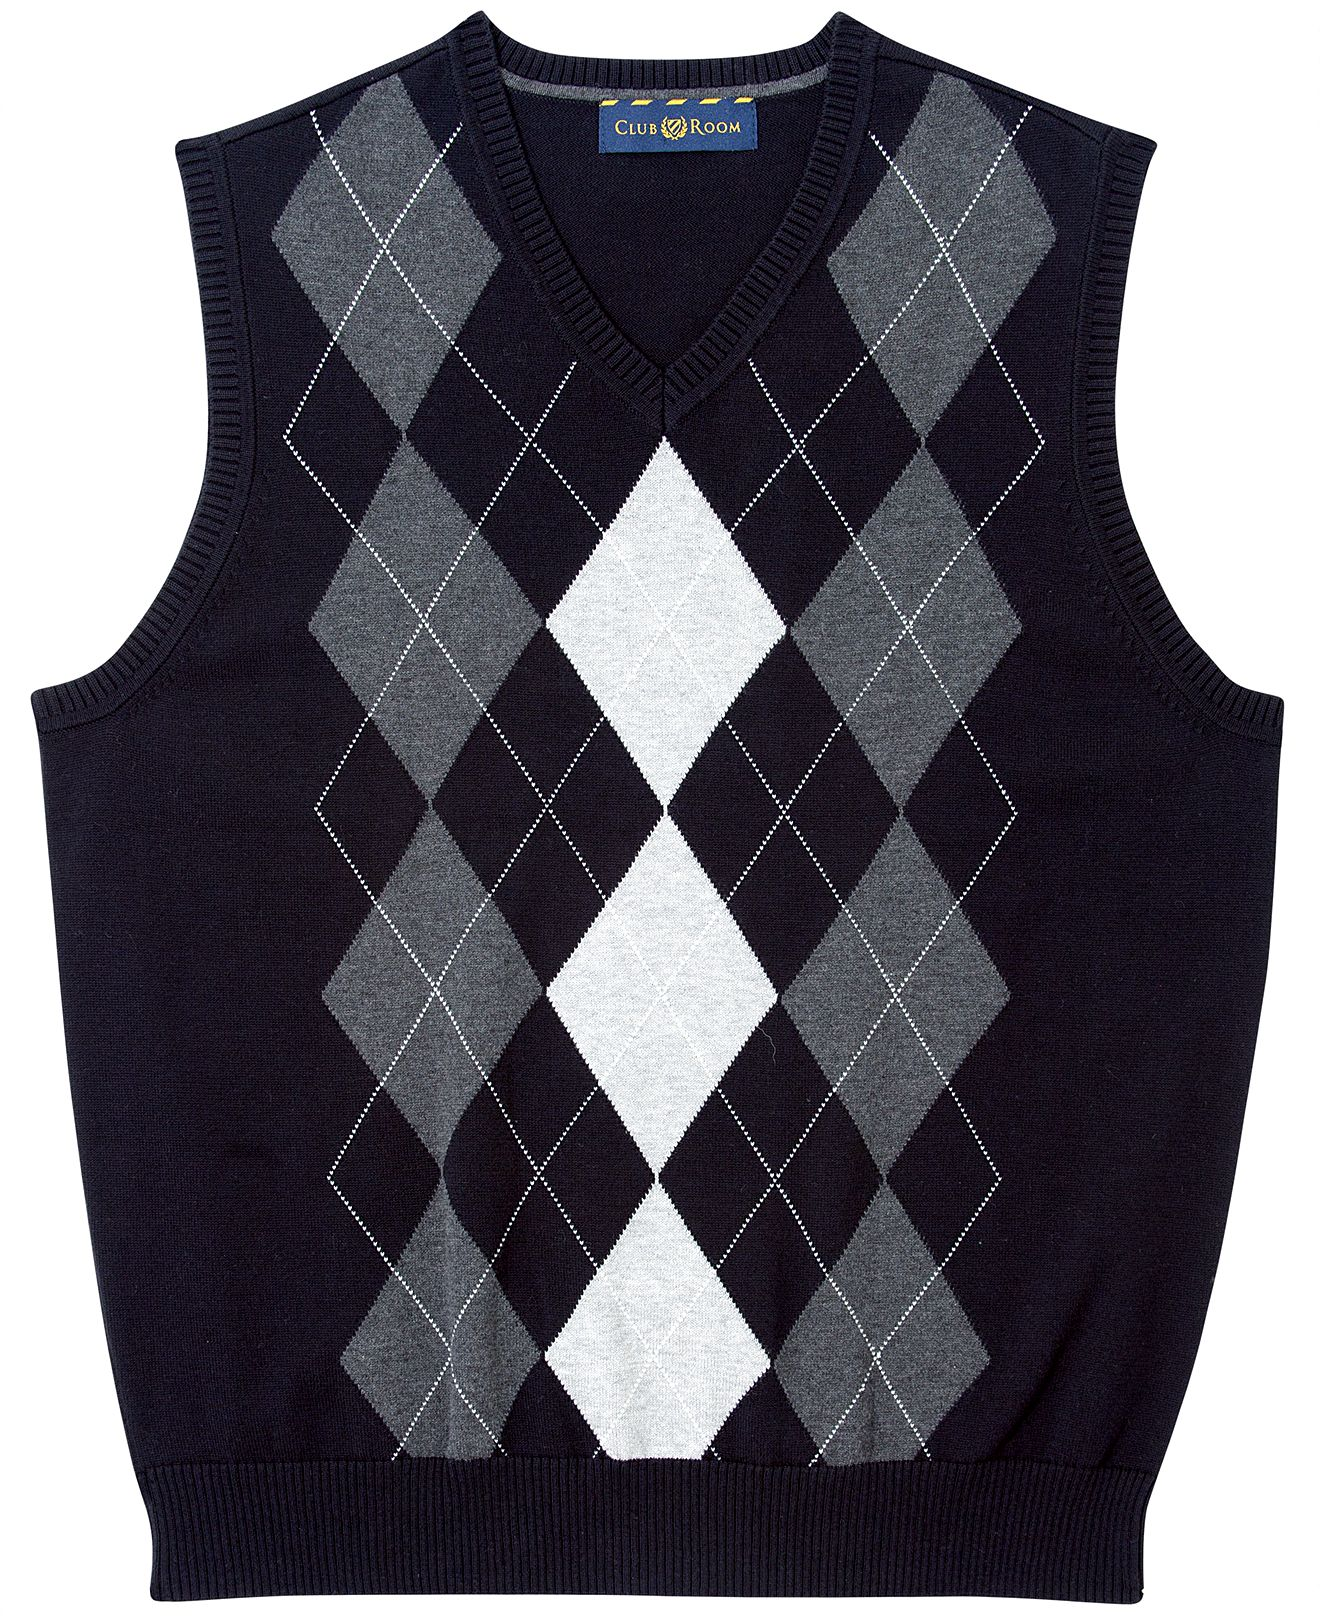 Sweater Vest Of The Month Club - Cashmere Sweater England